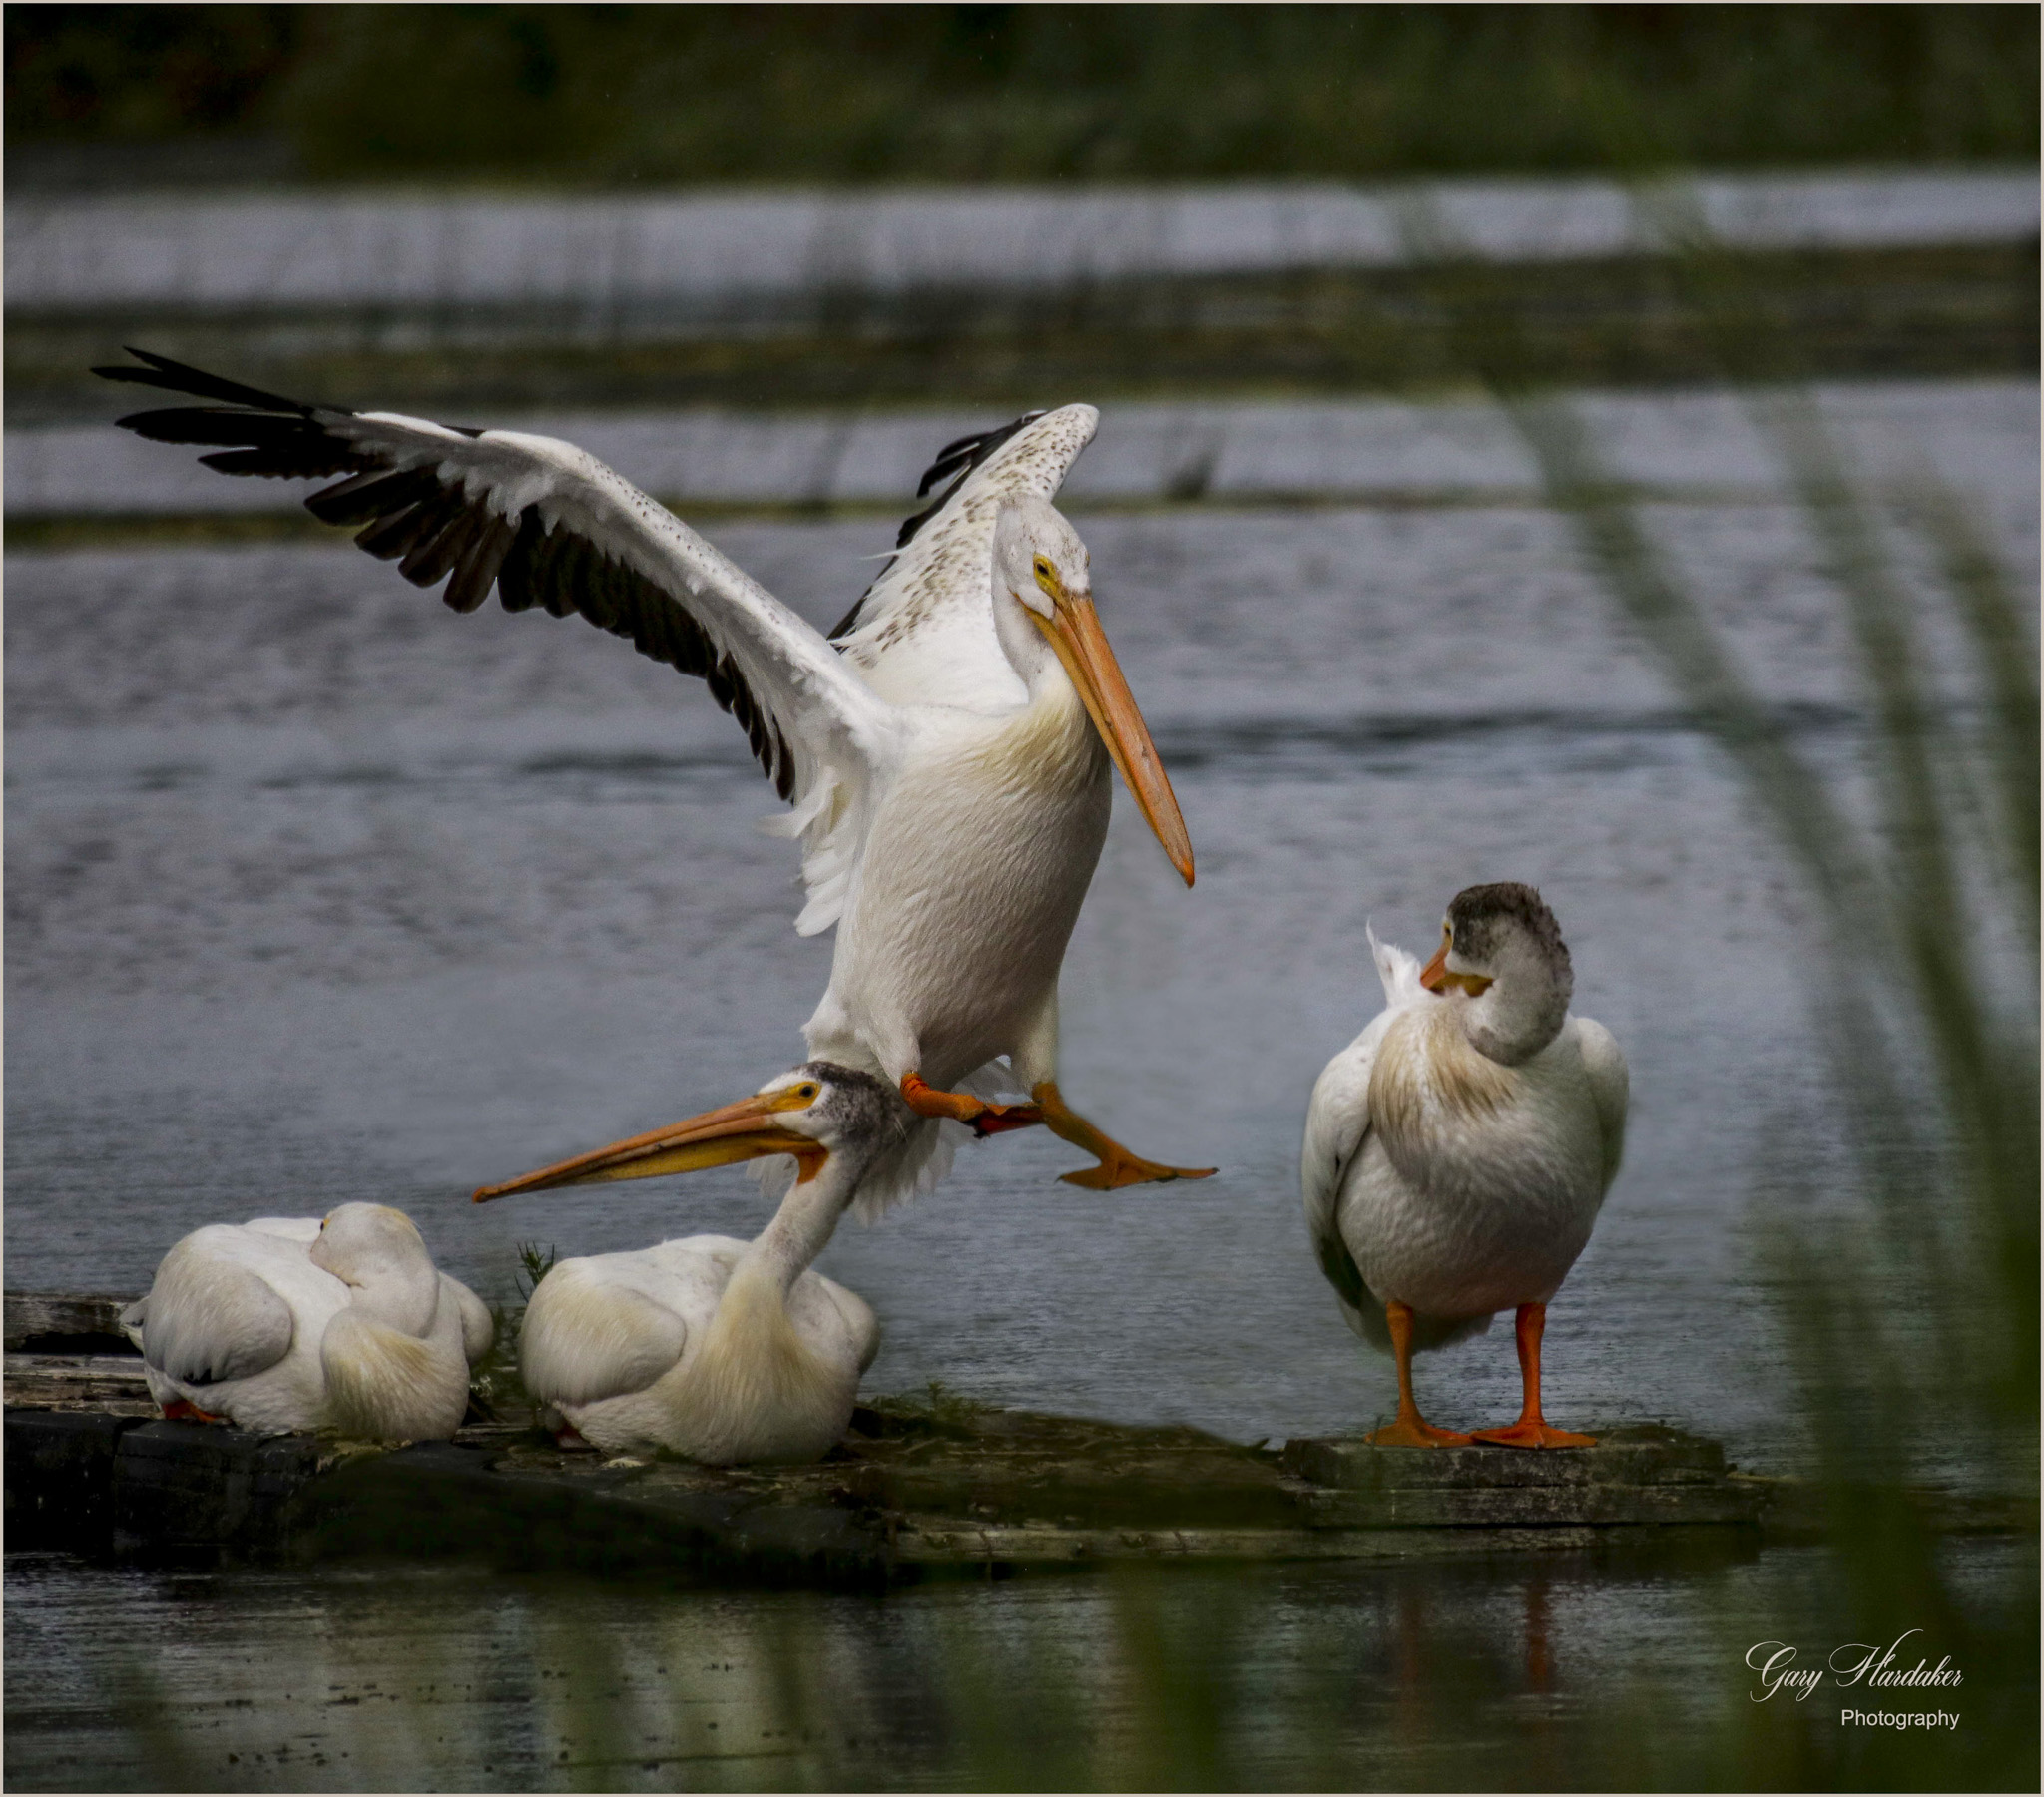 Coming in for a Landing (move over)- Gary Hardaker